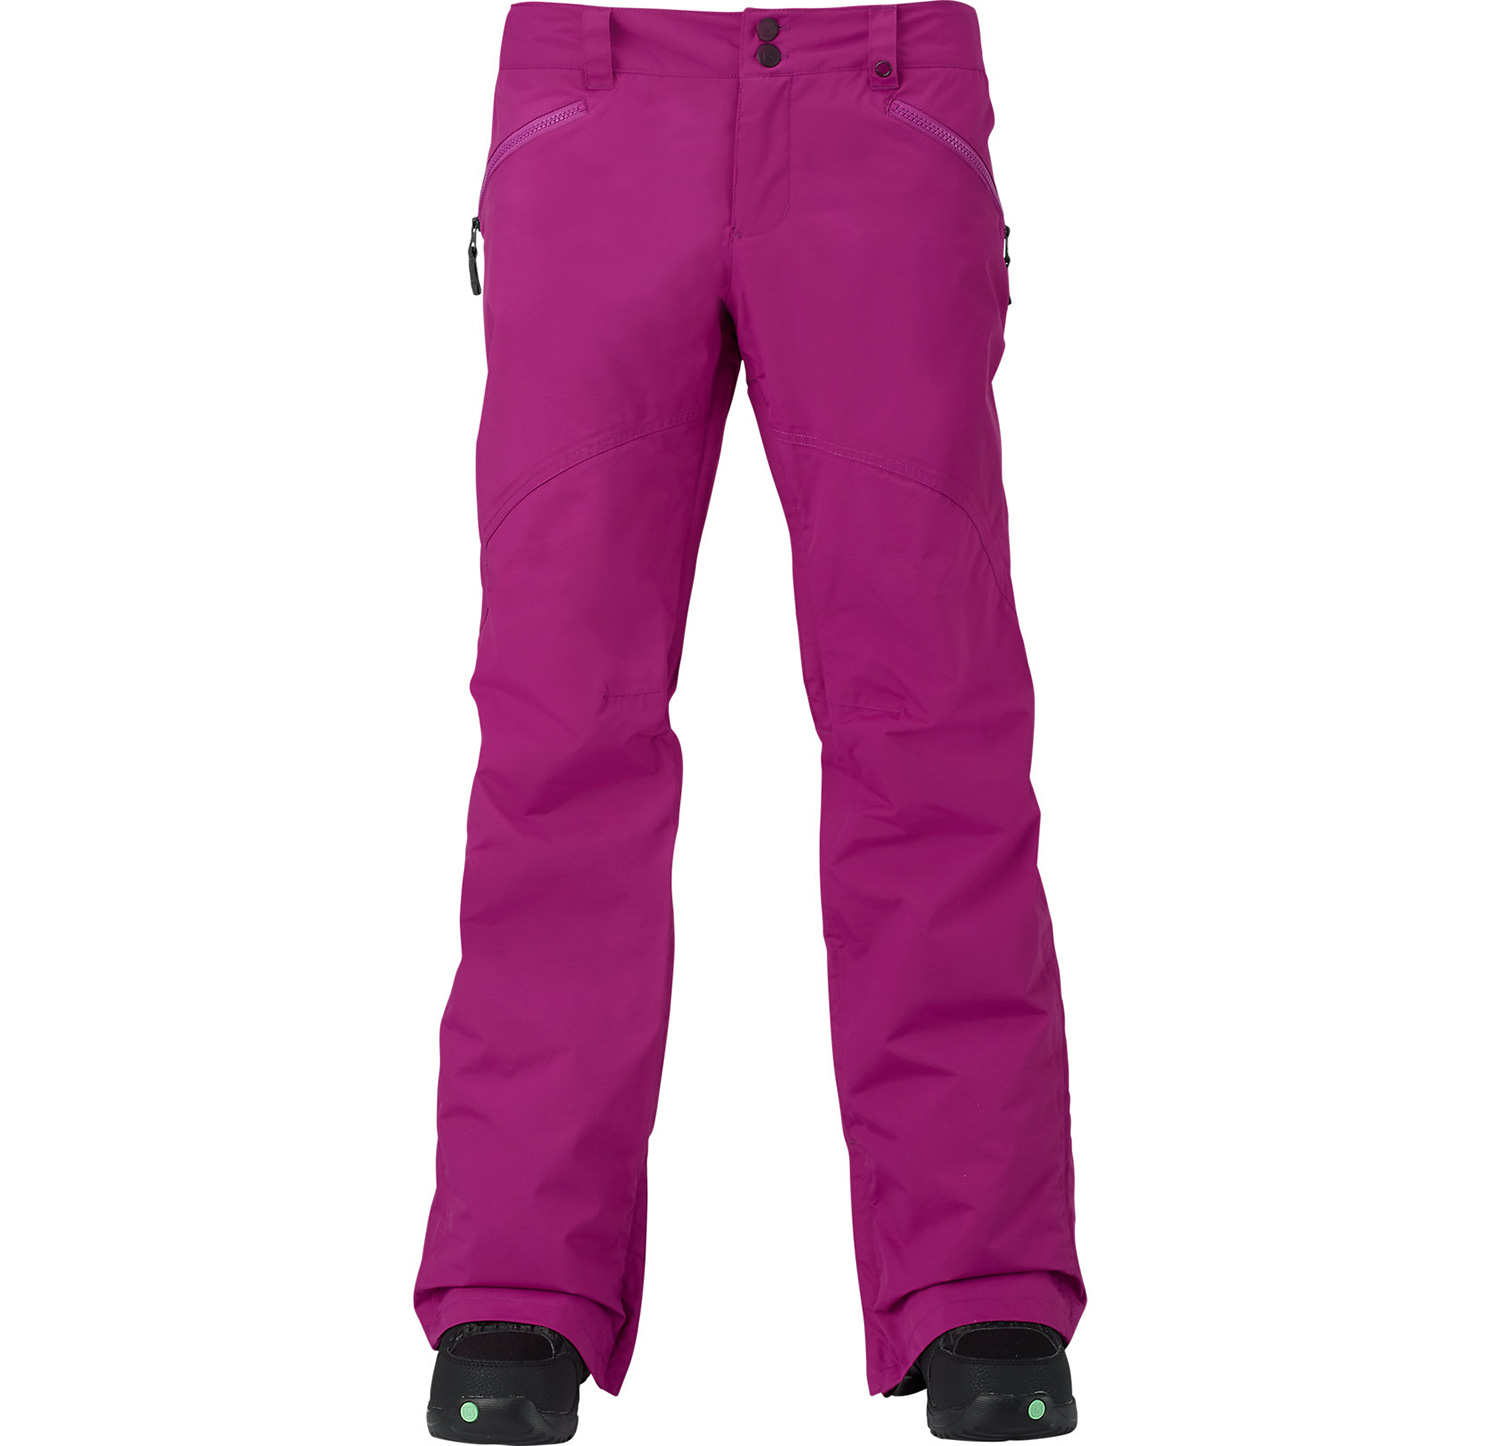 Snow womens pants for skiing and snowboarding